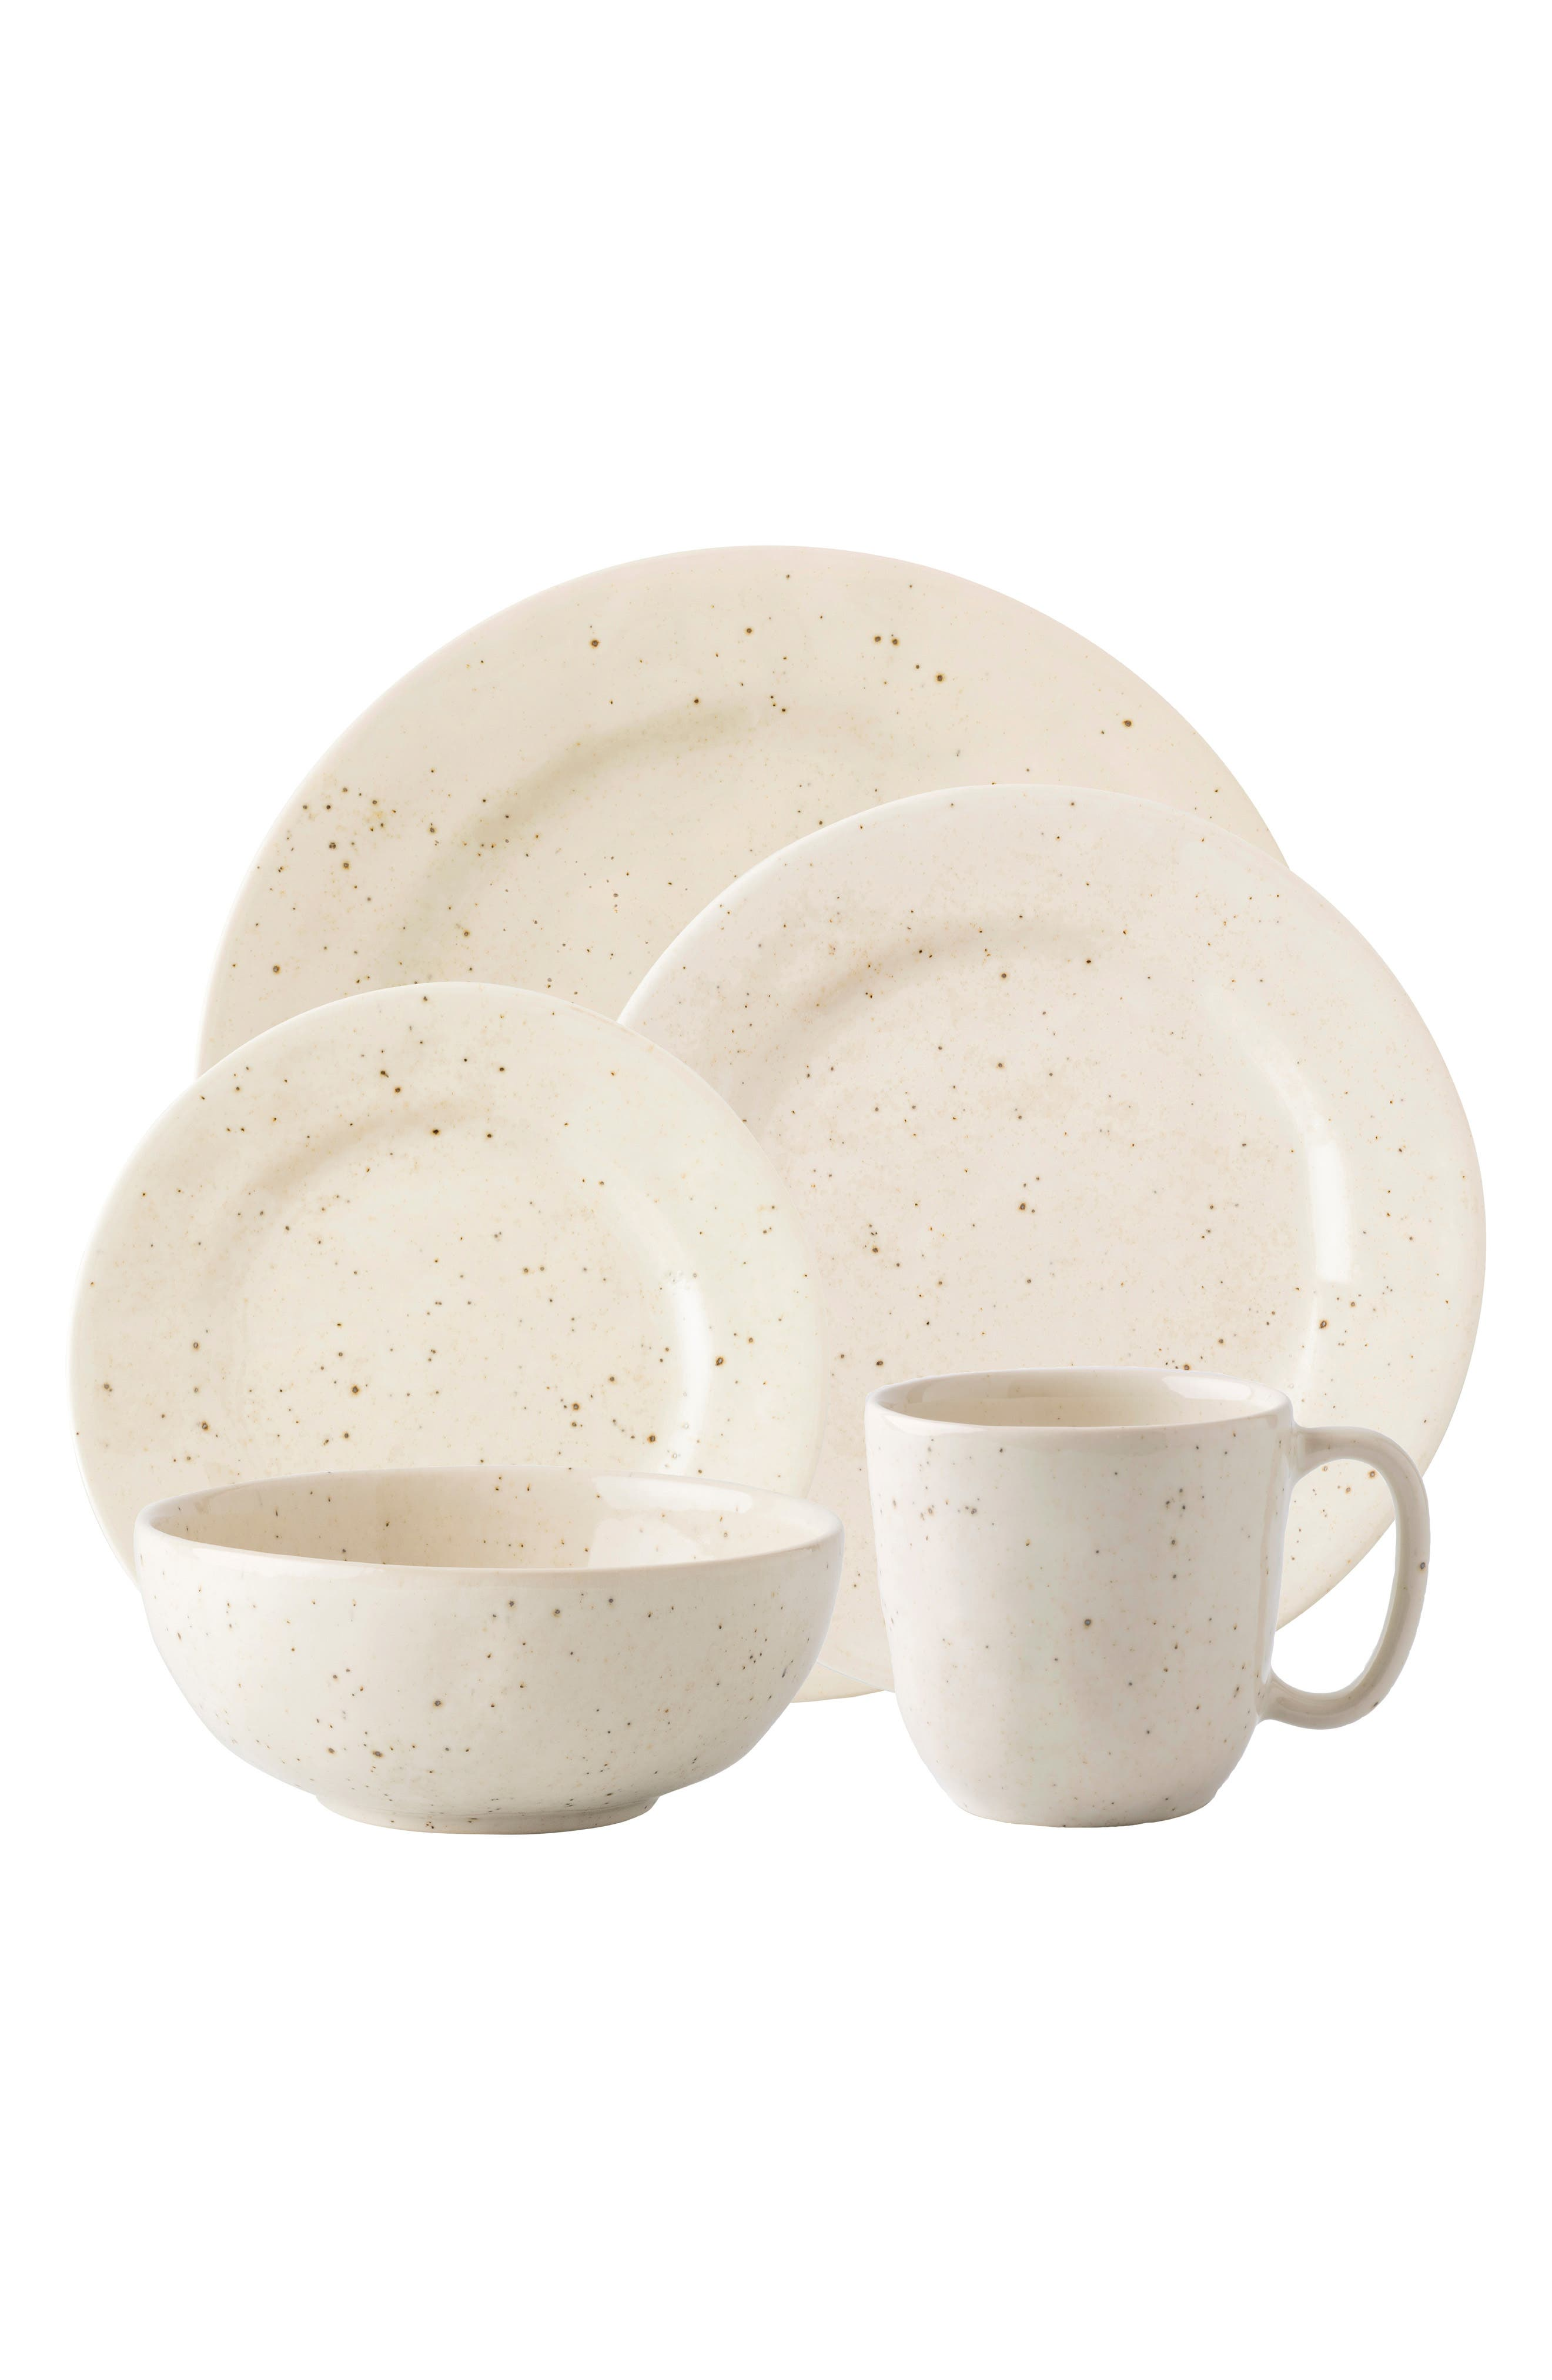 Main Image - Juliska Puro 5-Piece Ceramic Place Setting